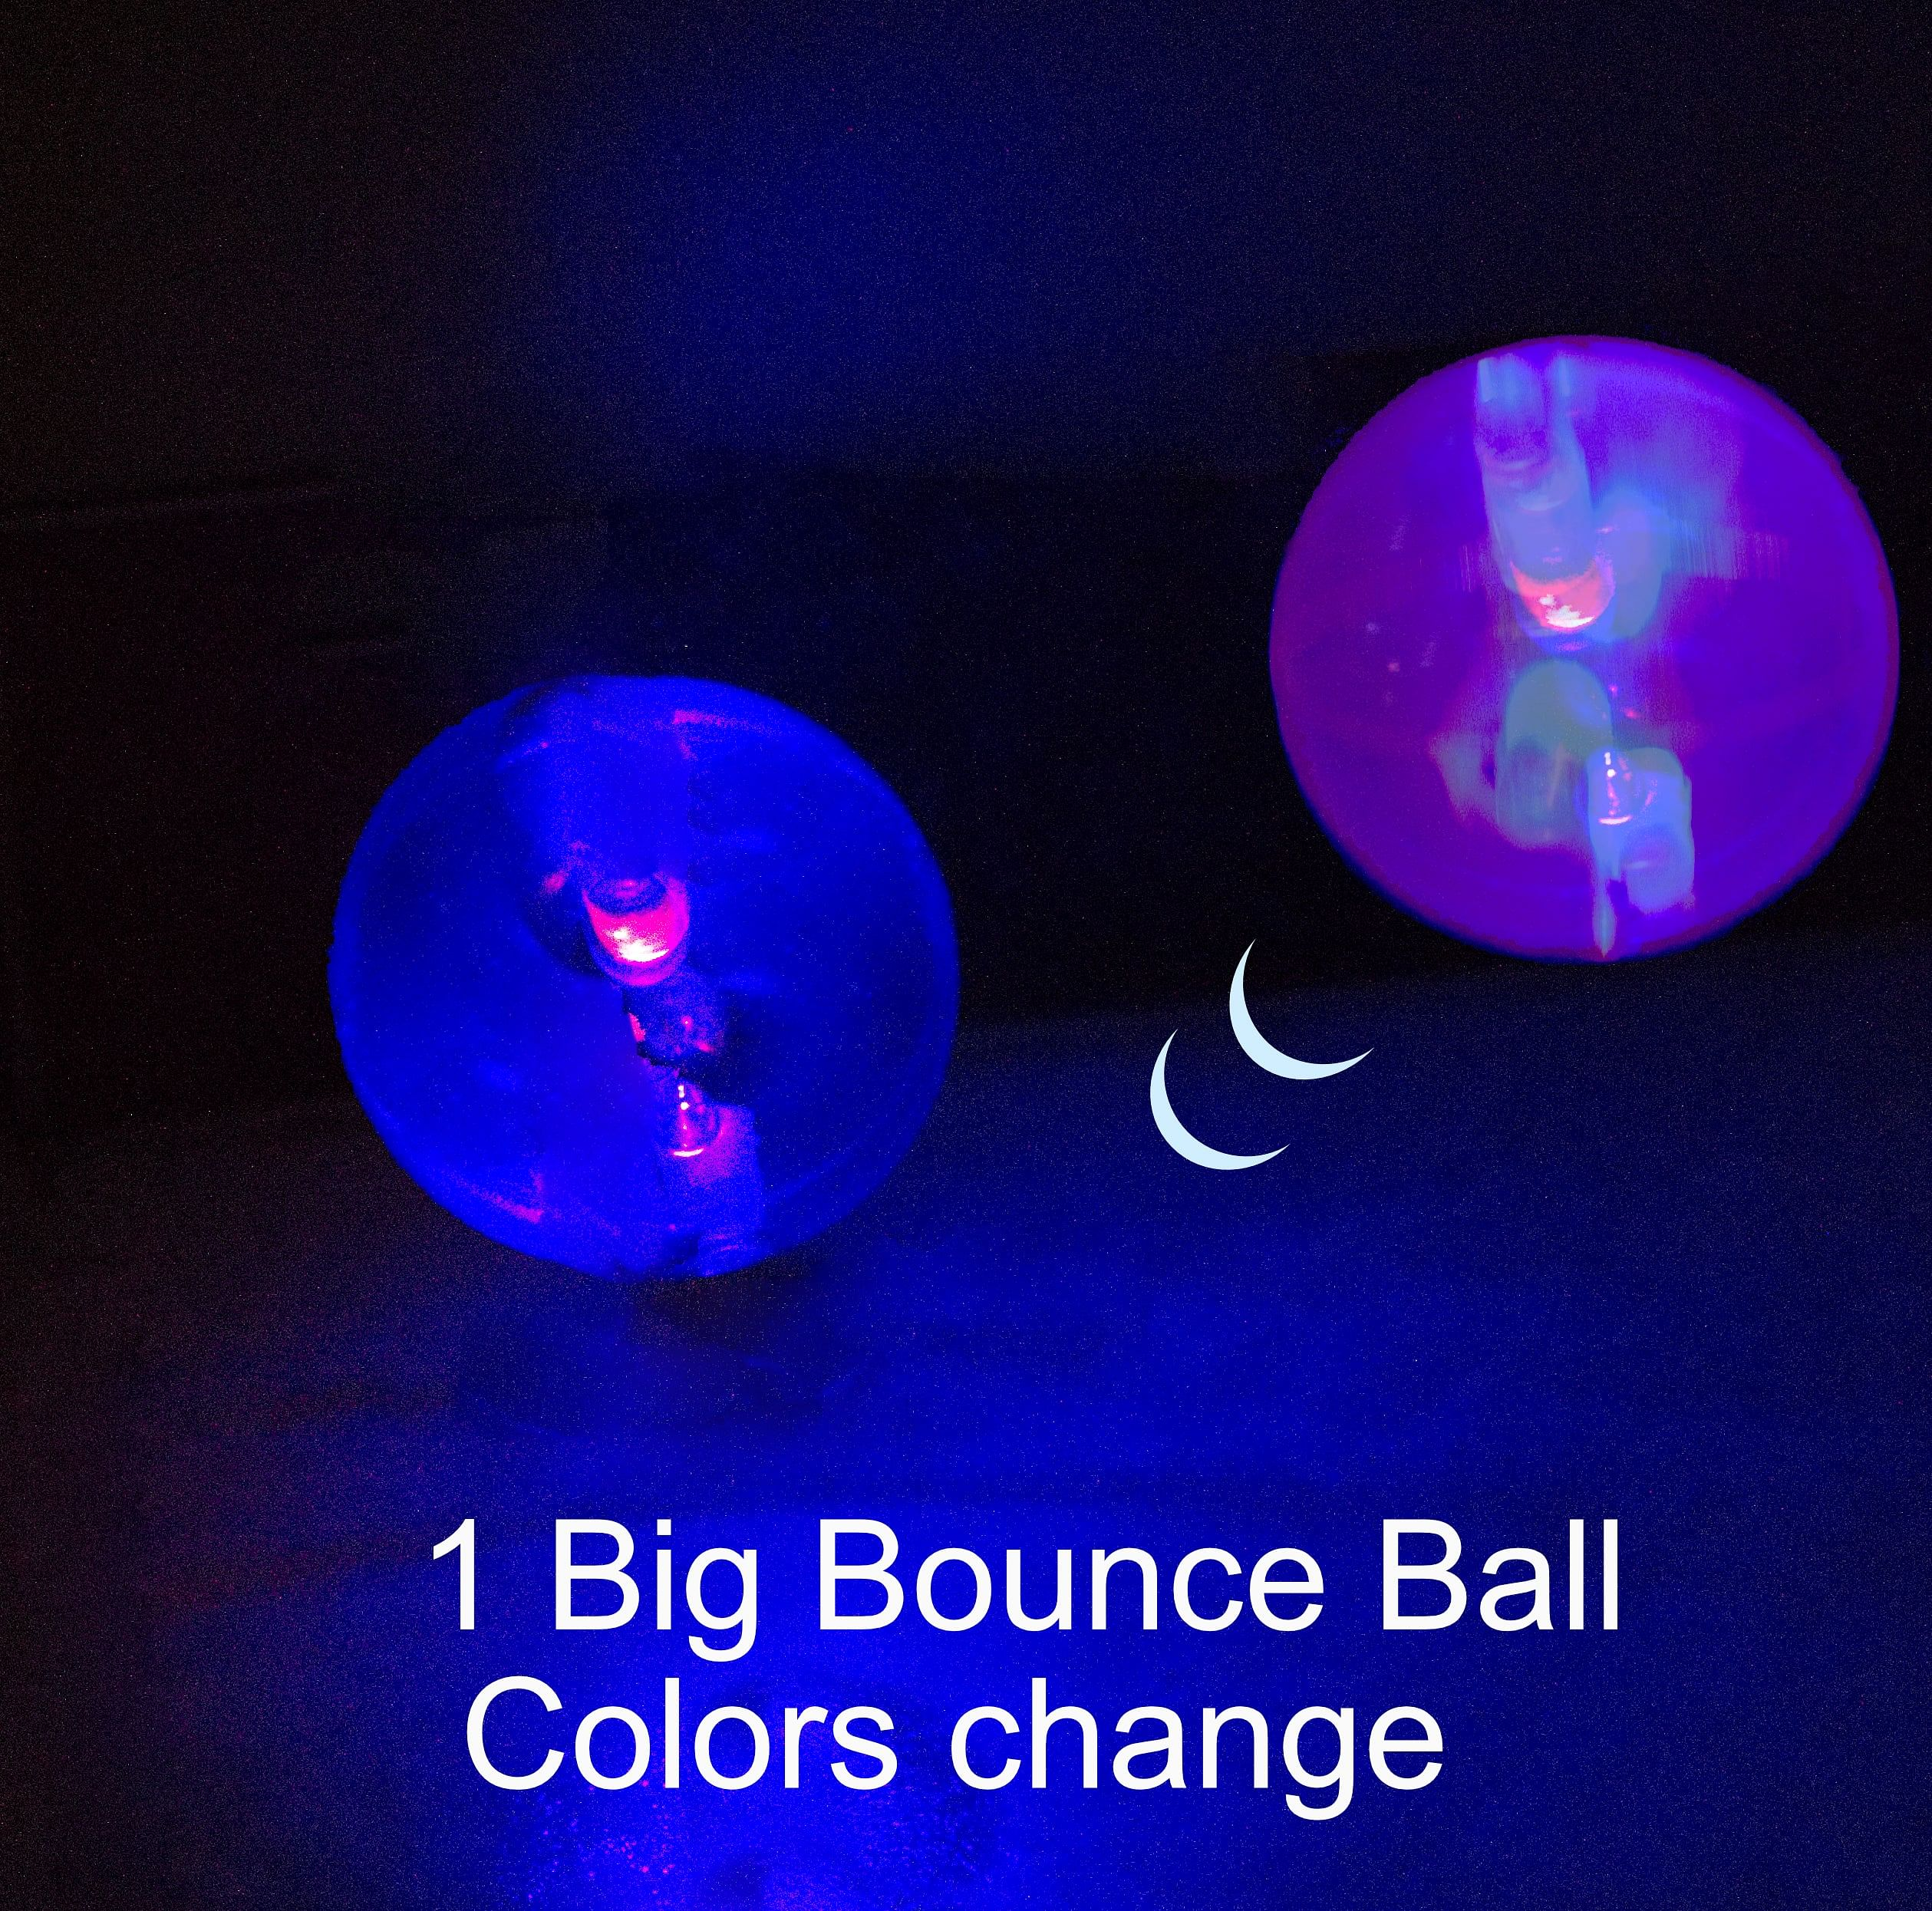 Crazy Dog Ball Toy-Big Bright Colorful Lights Up Ball Last Long Time-Fun Bounce That Dogs Will Quickly Spot and Love To Chase